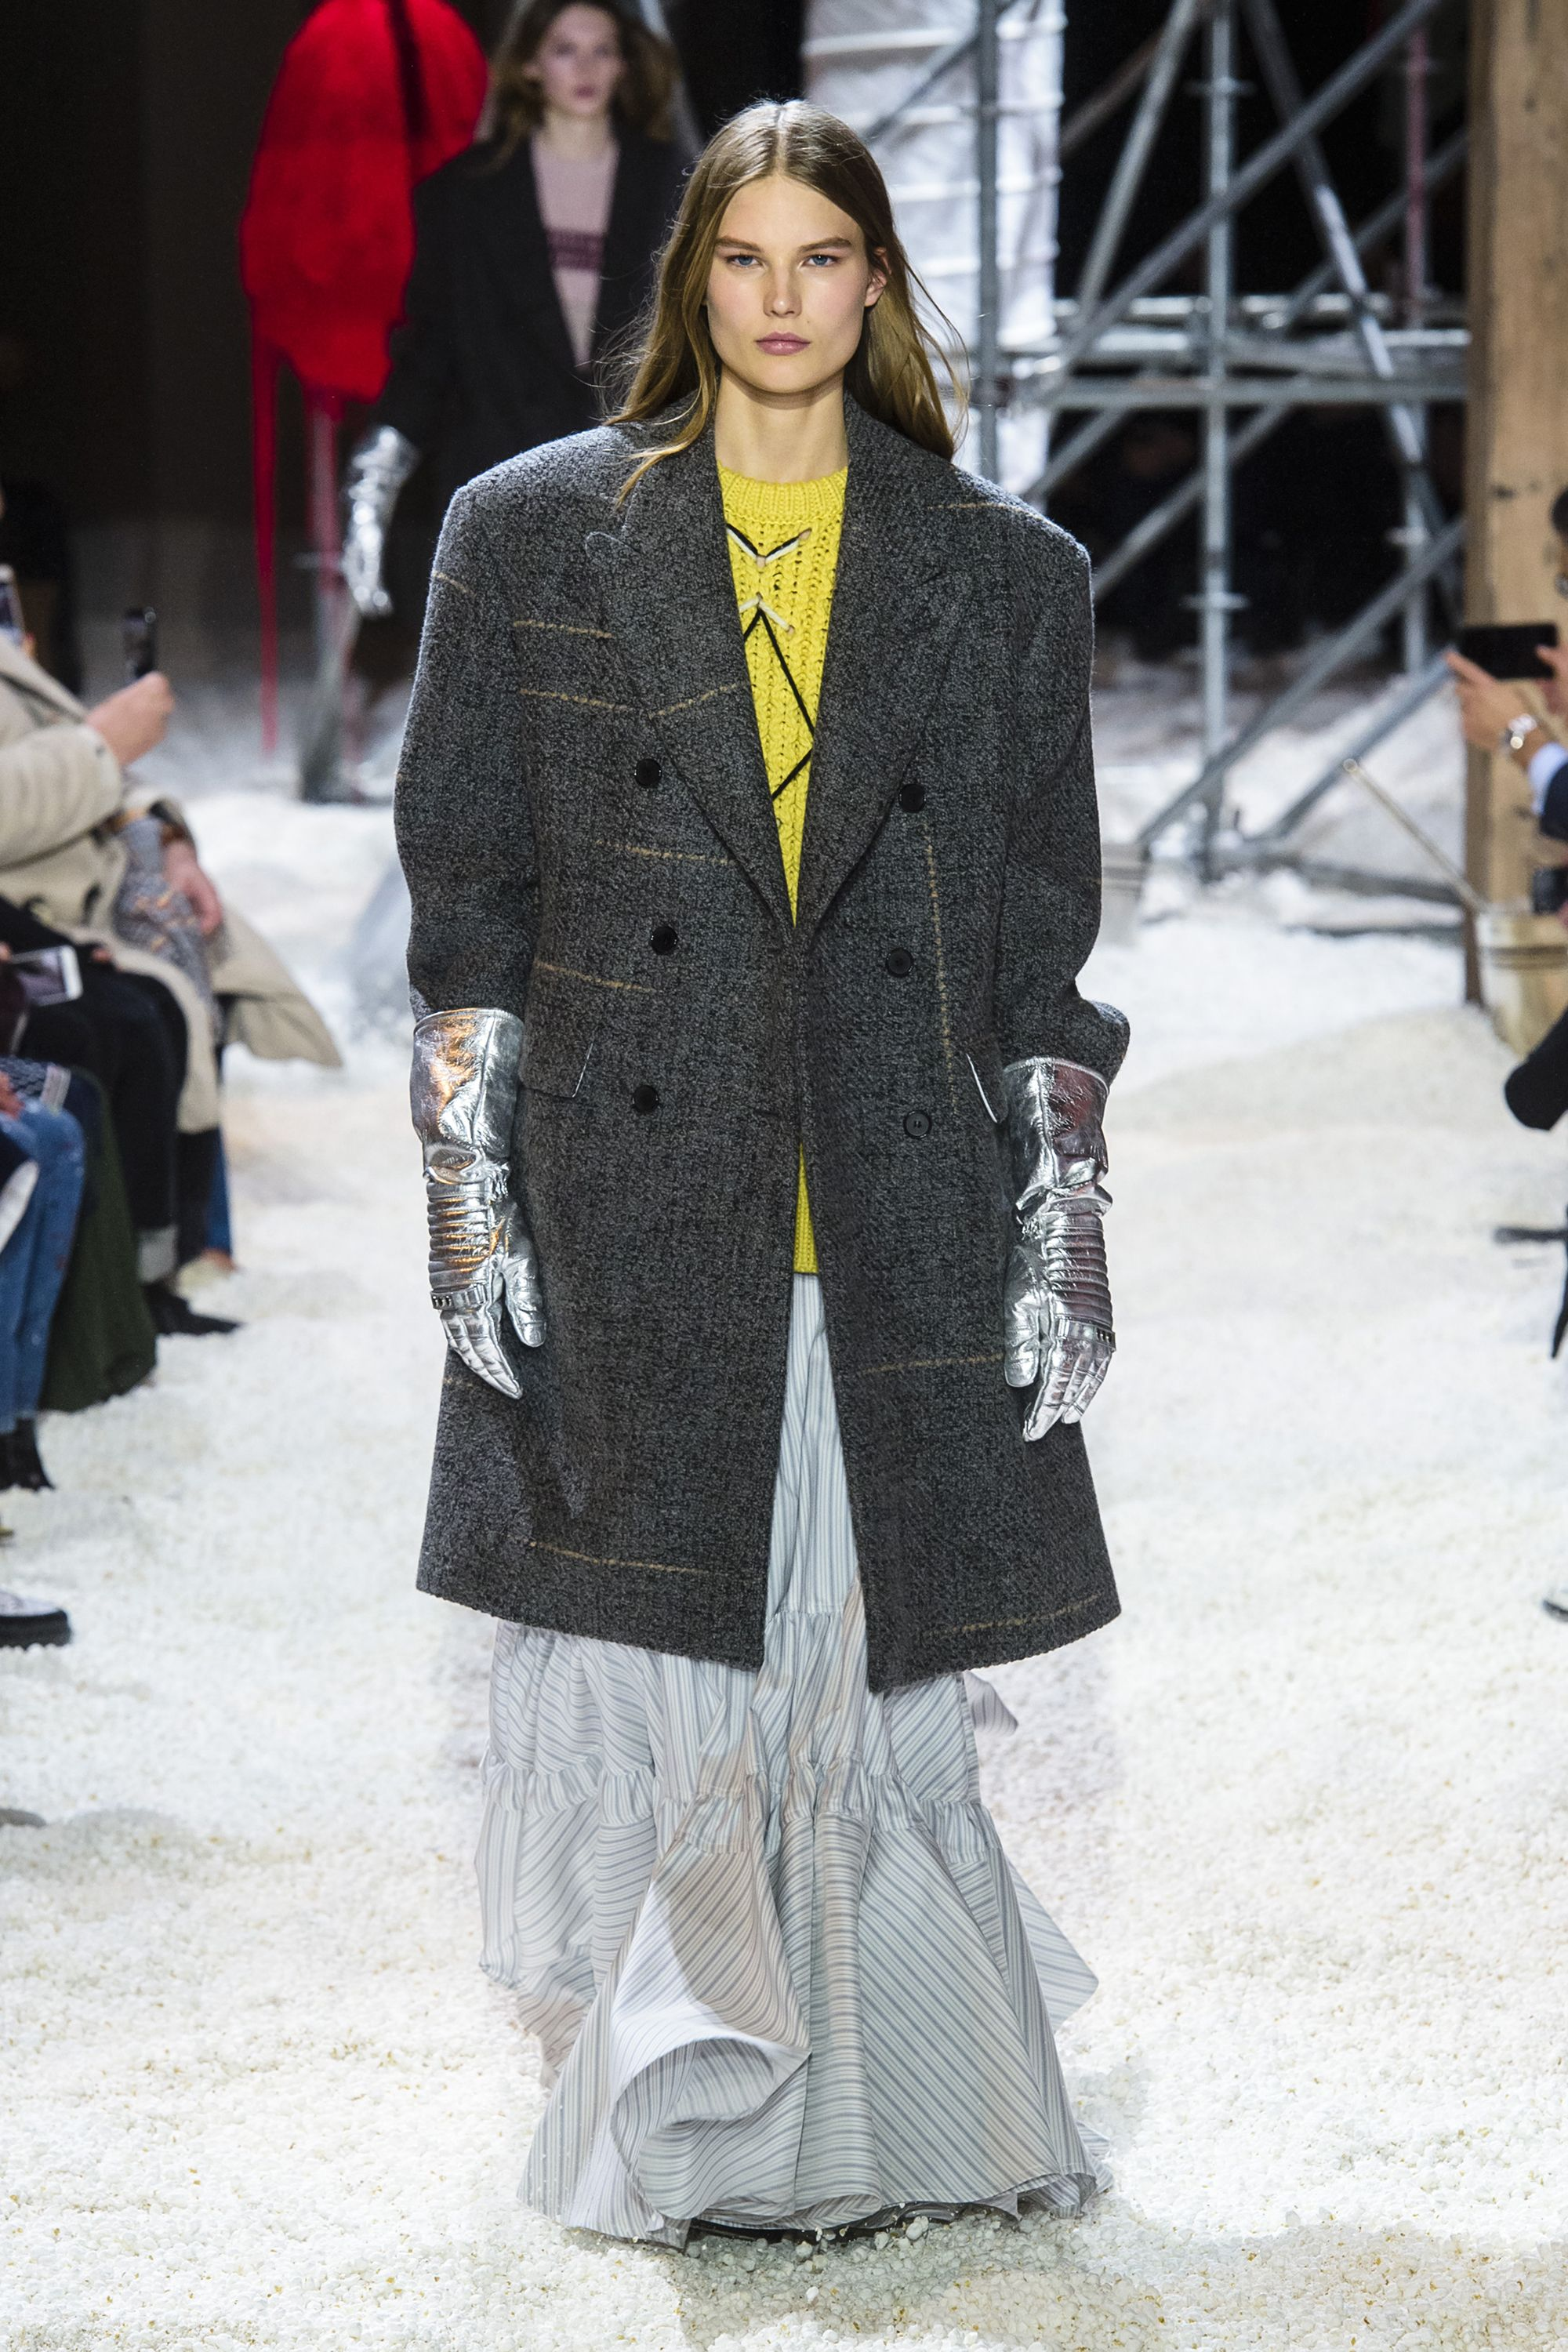 18 Pieces From Men's Fashion Week That'll Look Better onYou 18 Pieces From Men's Fashion Week That'll Look Better onYou new photo